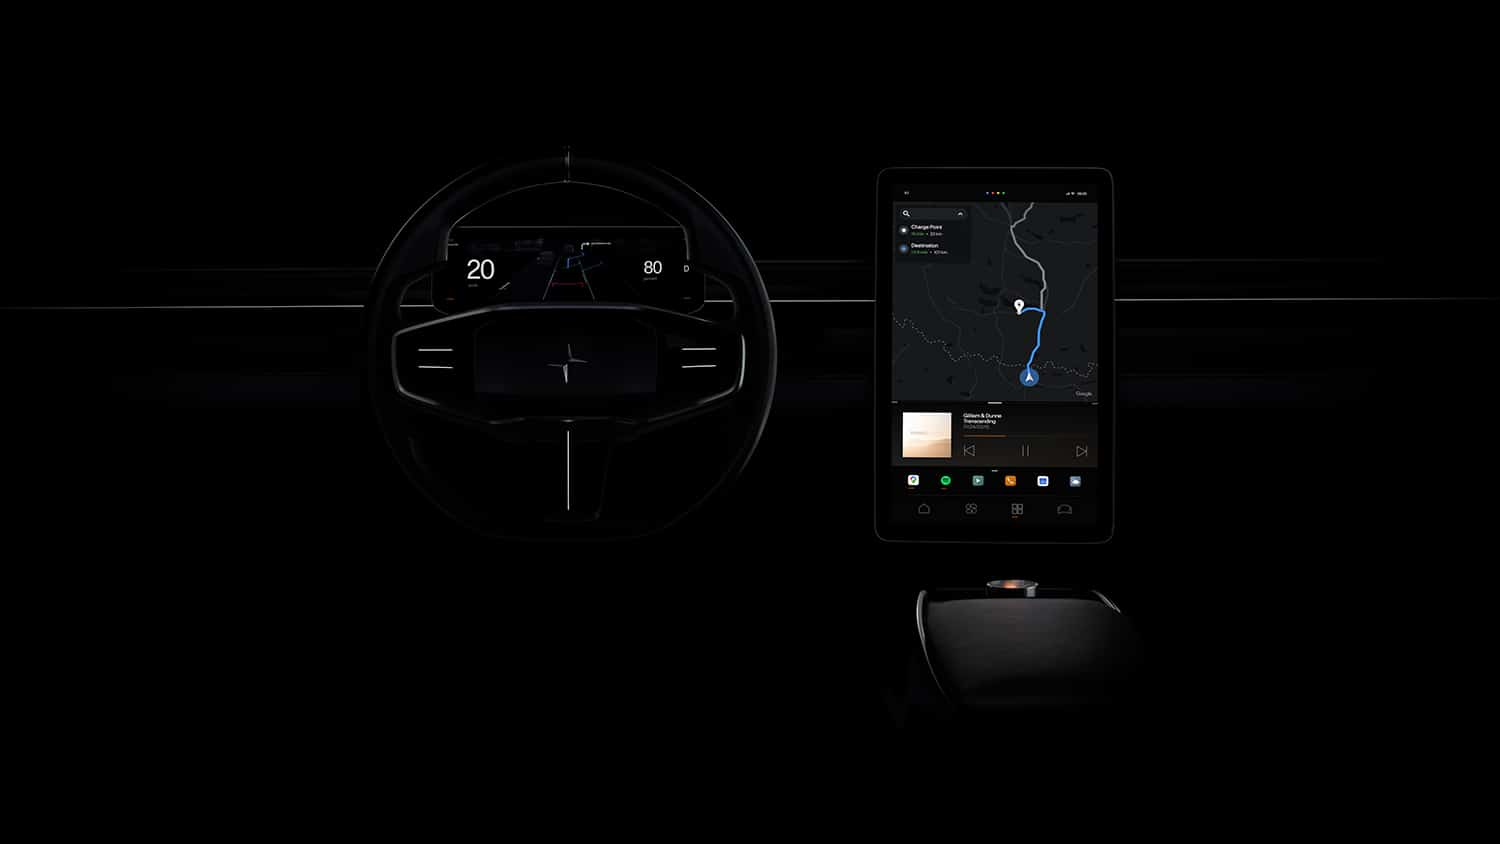 Polestar 2 will feature customizable, smartphone-like infotainment system